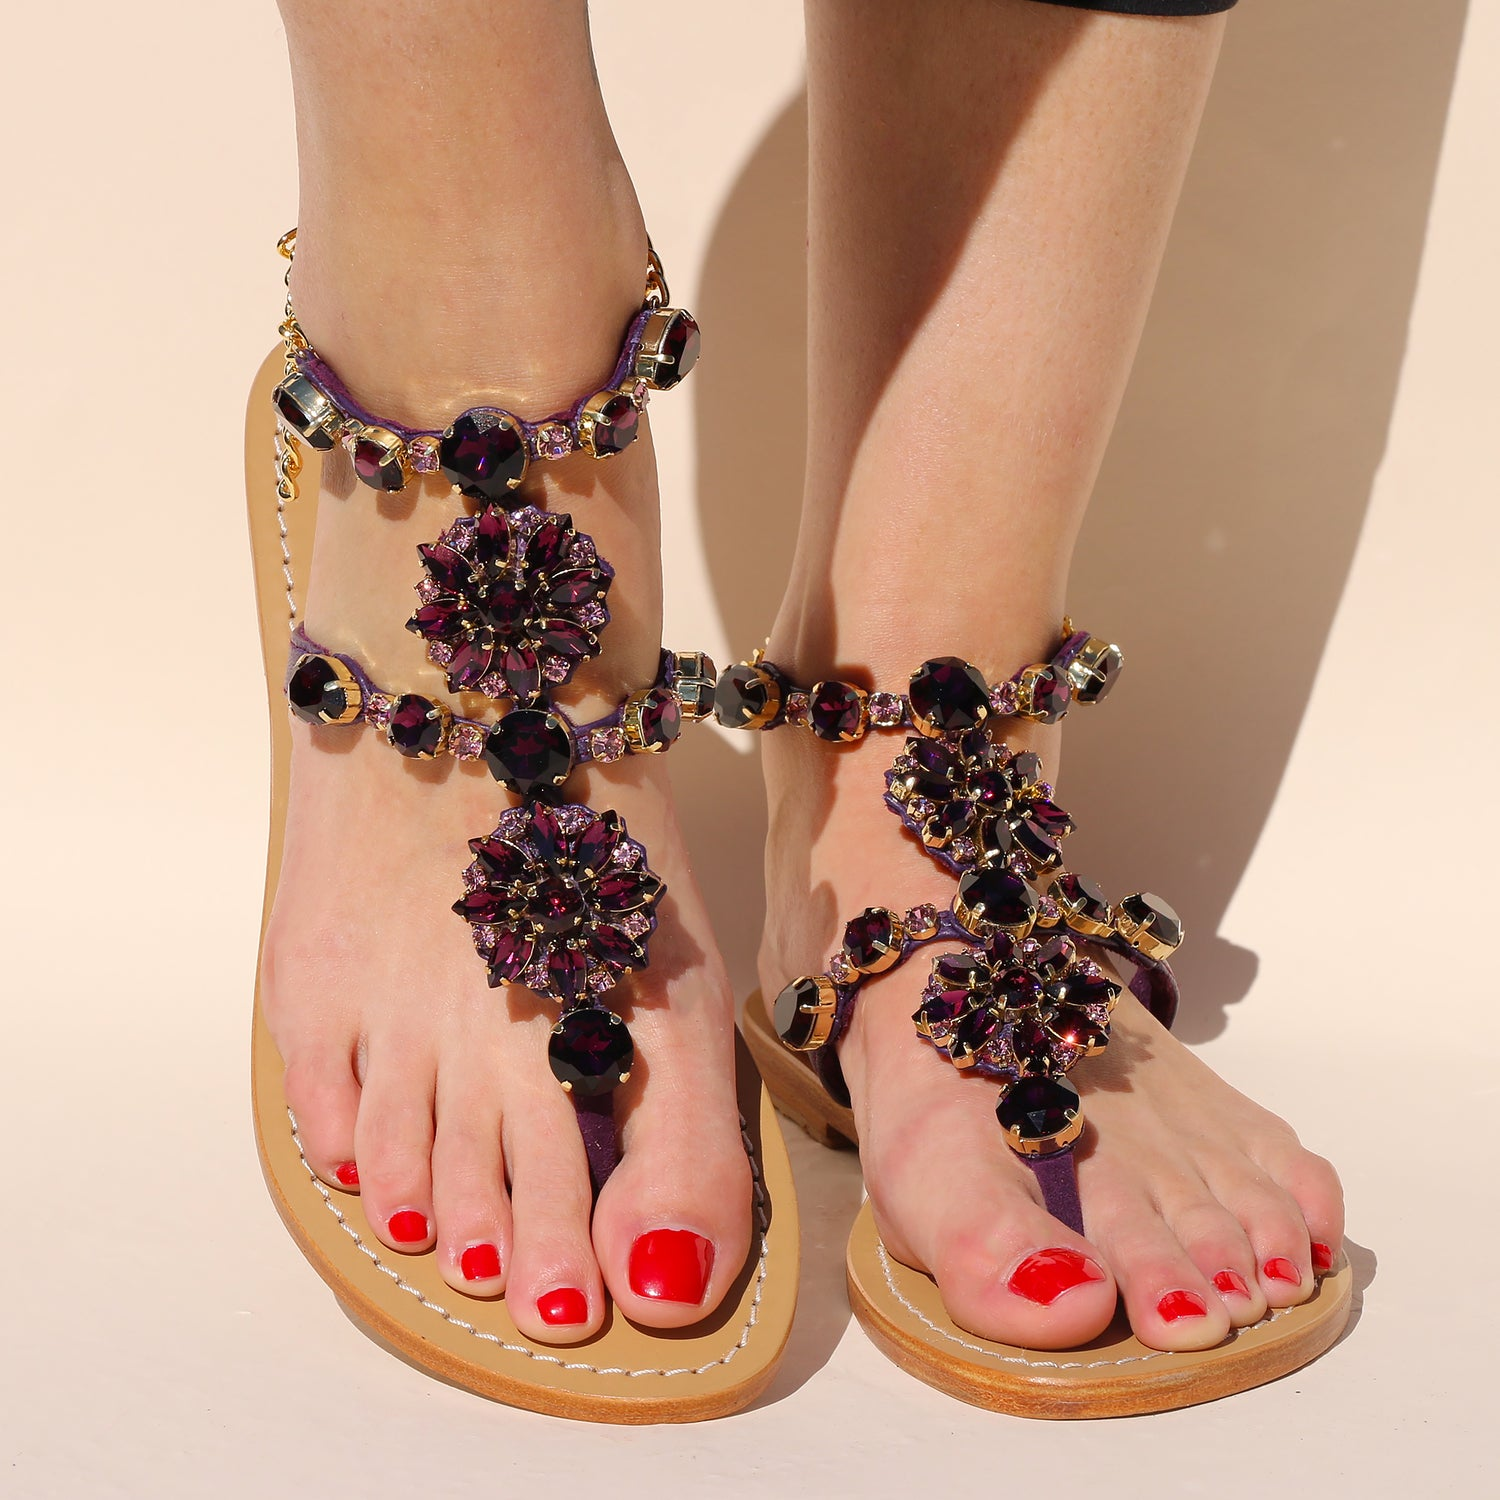 Bristol - Mystique Sandals